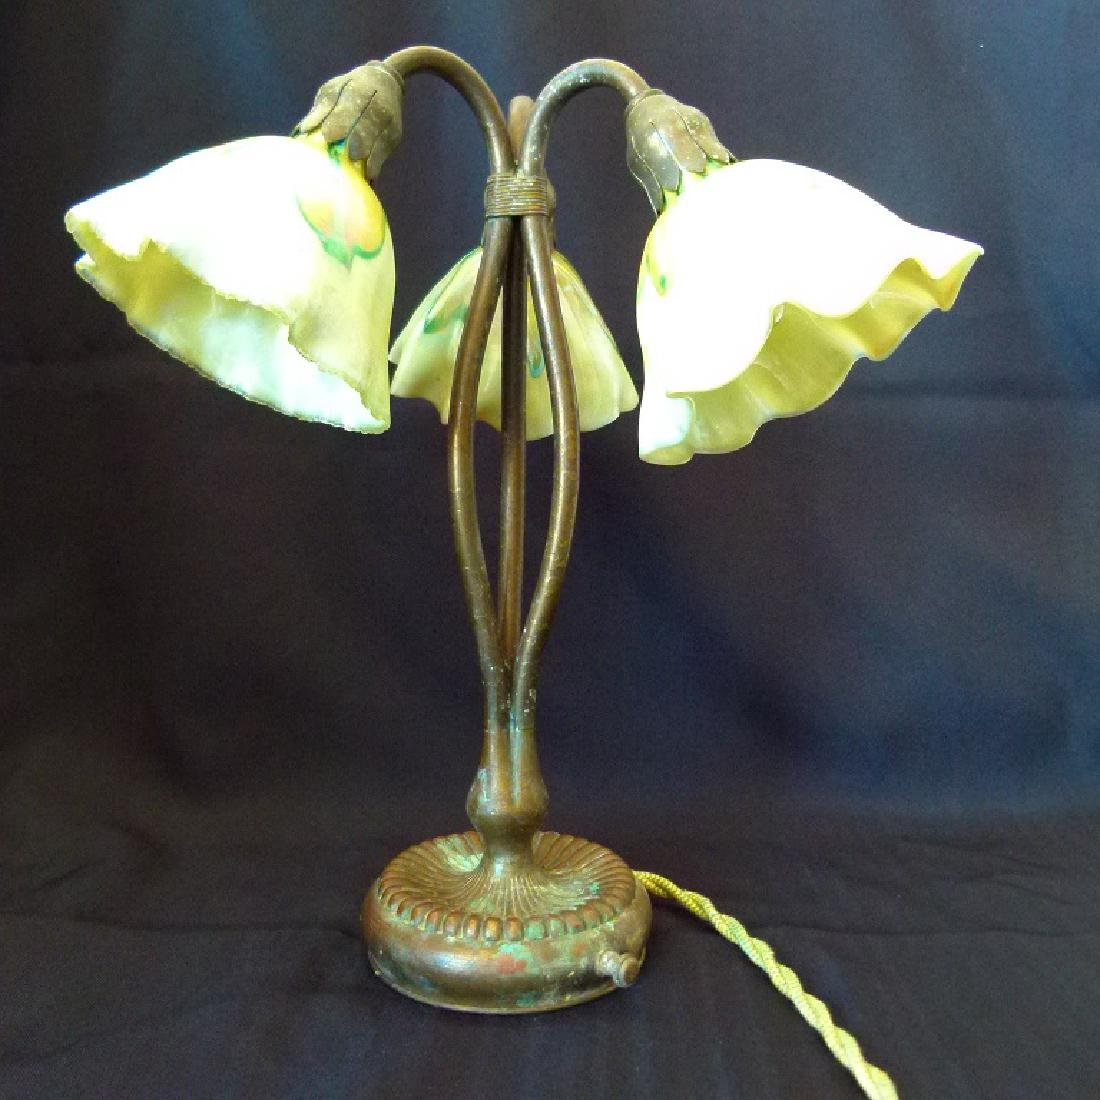 FINE TIFFANY STUDIOS LILY LAMP W/ FAVRILE PULLED